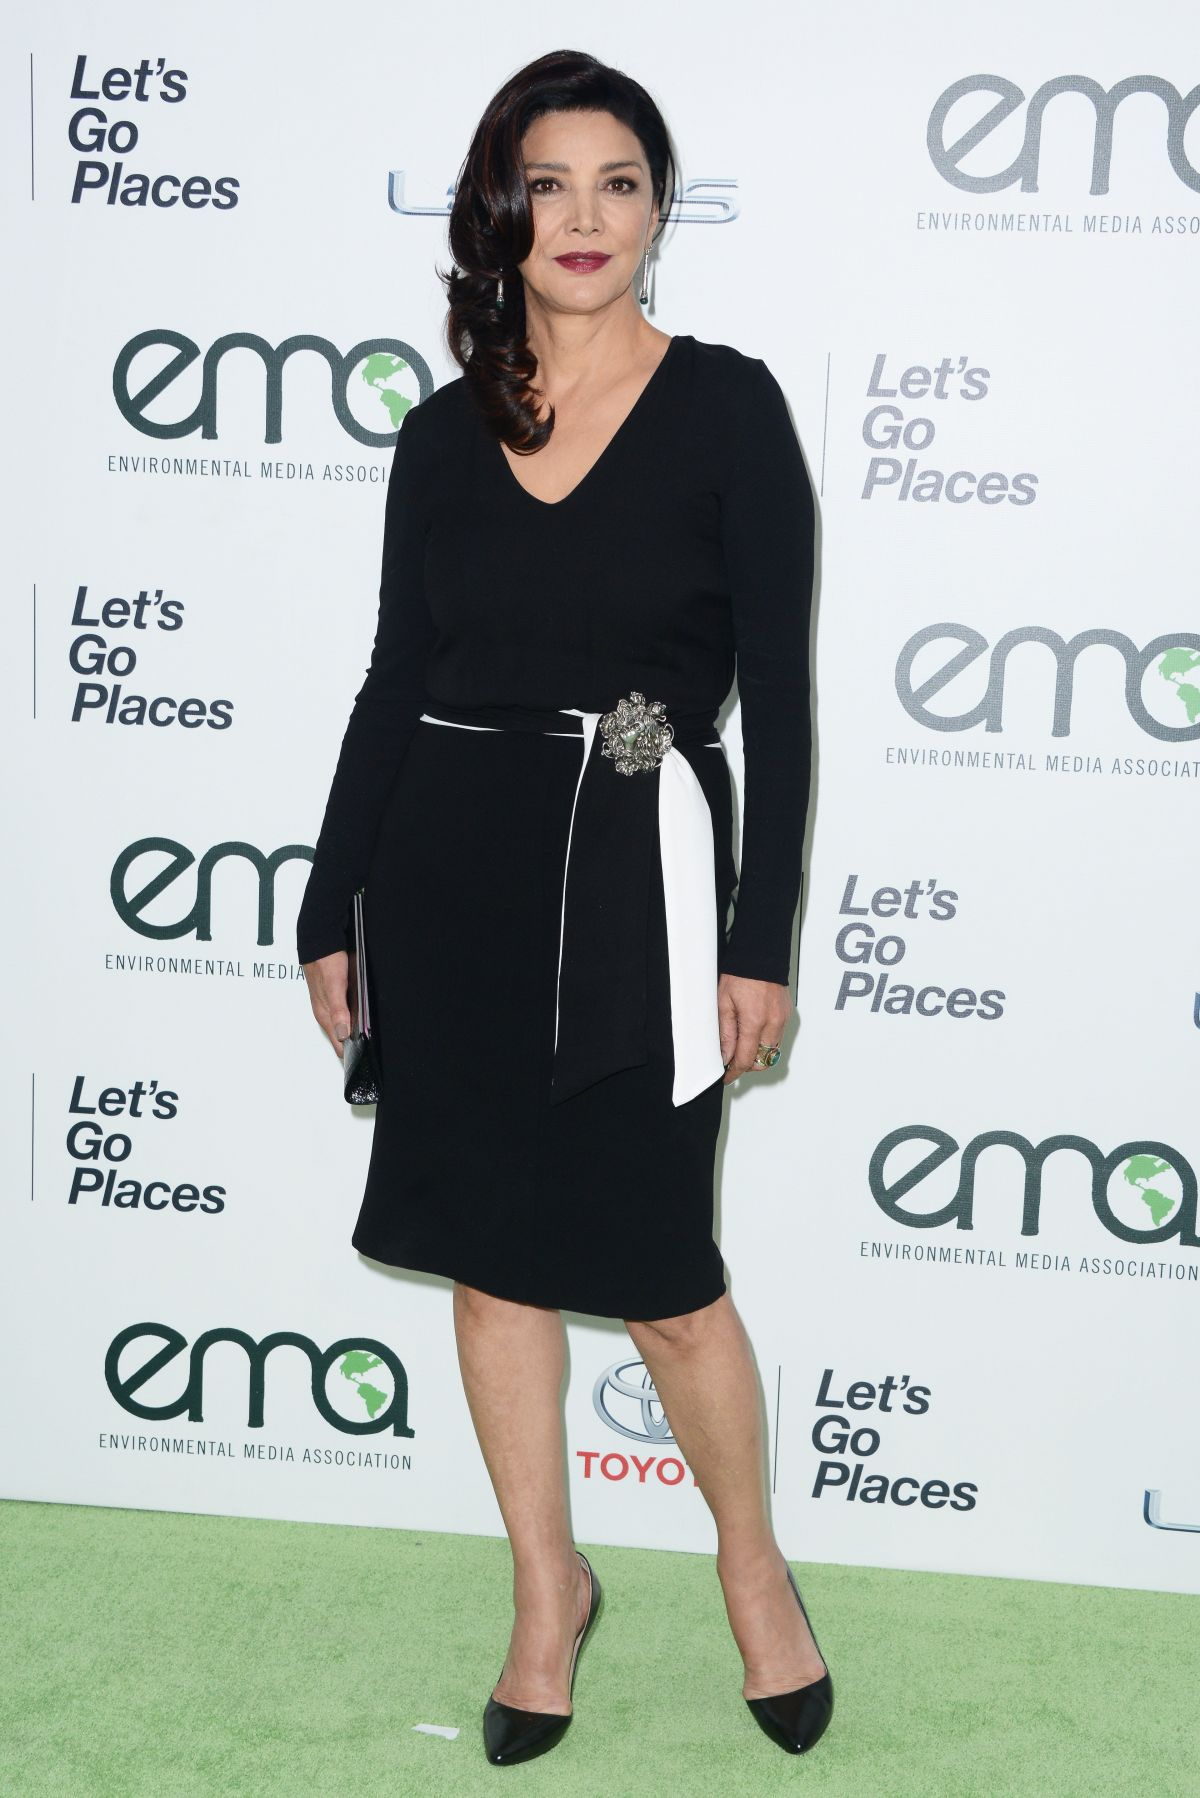 SHOHREH AGHDASHLOO at 2015 EMA Awards in Burbank 10/24/2015